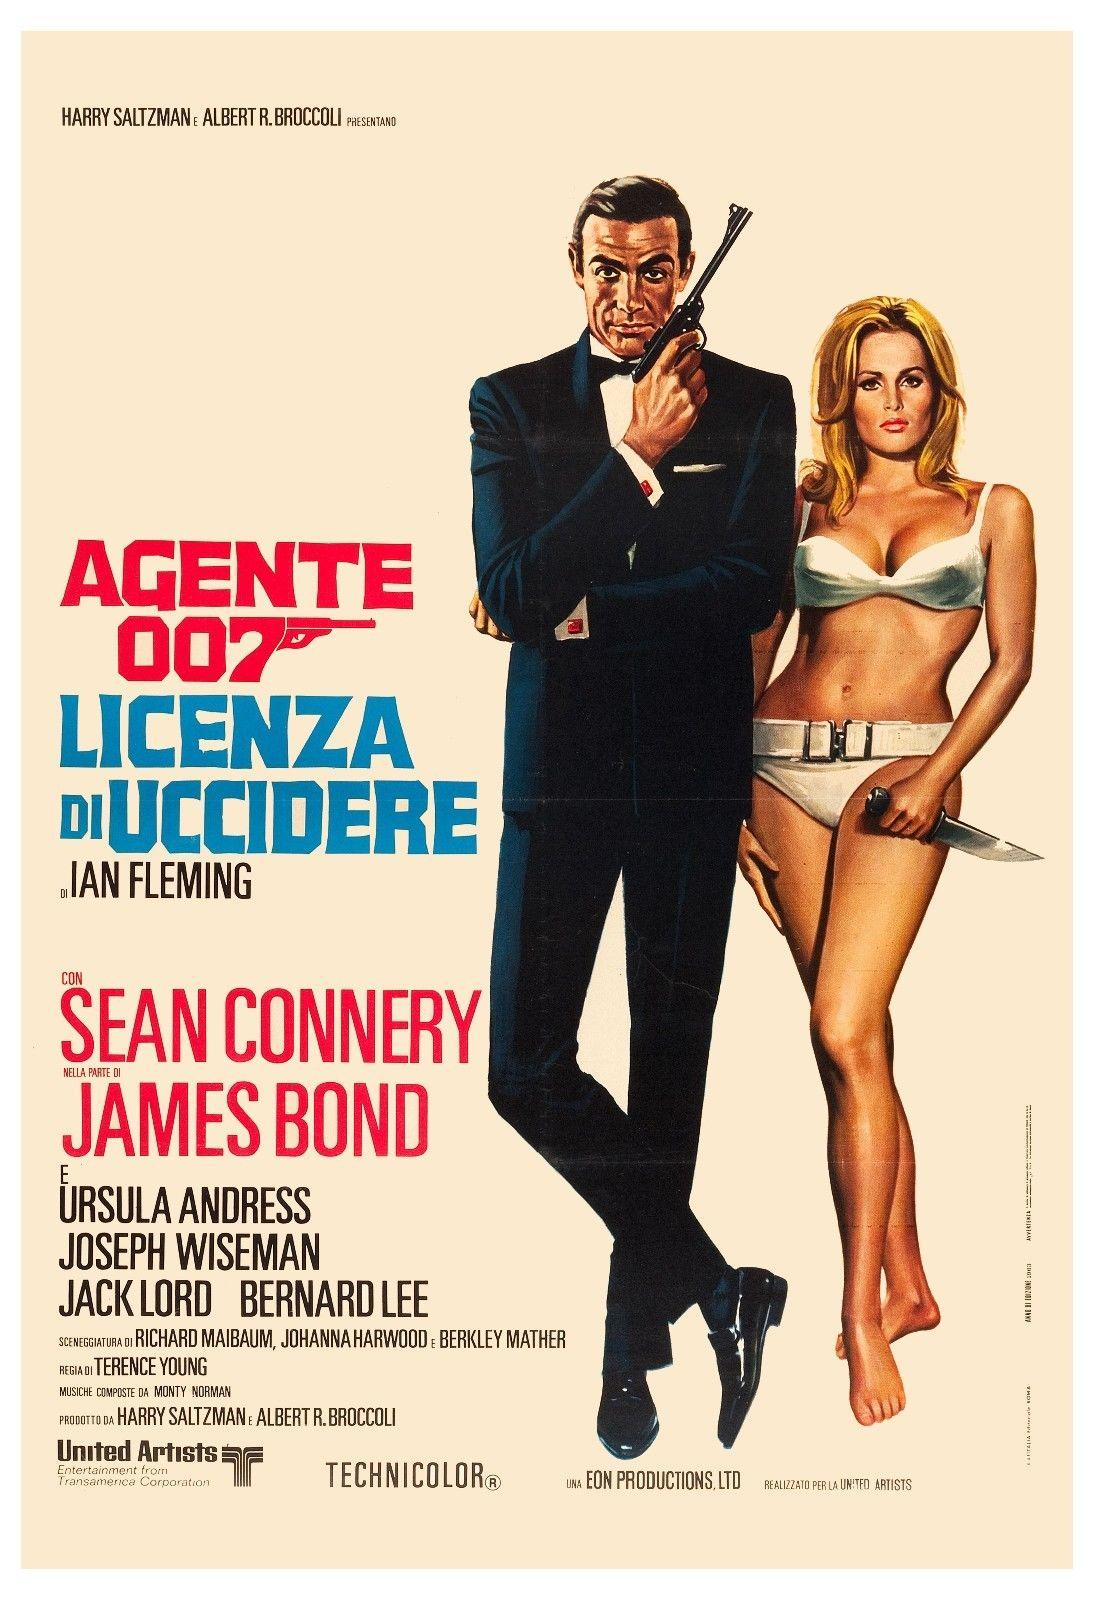 2019 james bond dr no sean connery italian r 1972 large format art silk print poster 24x36inch60x90cm 019 from chuy8988 10 93 dhgate com